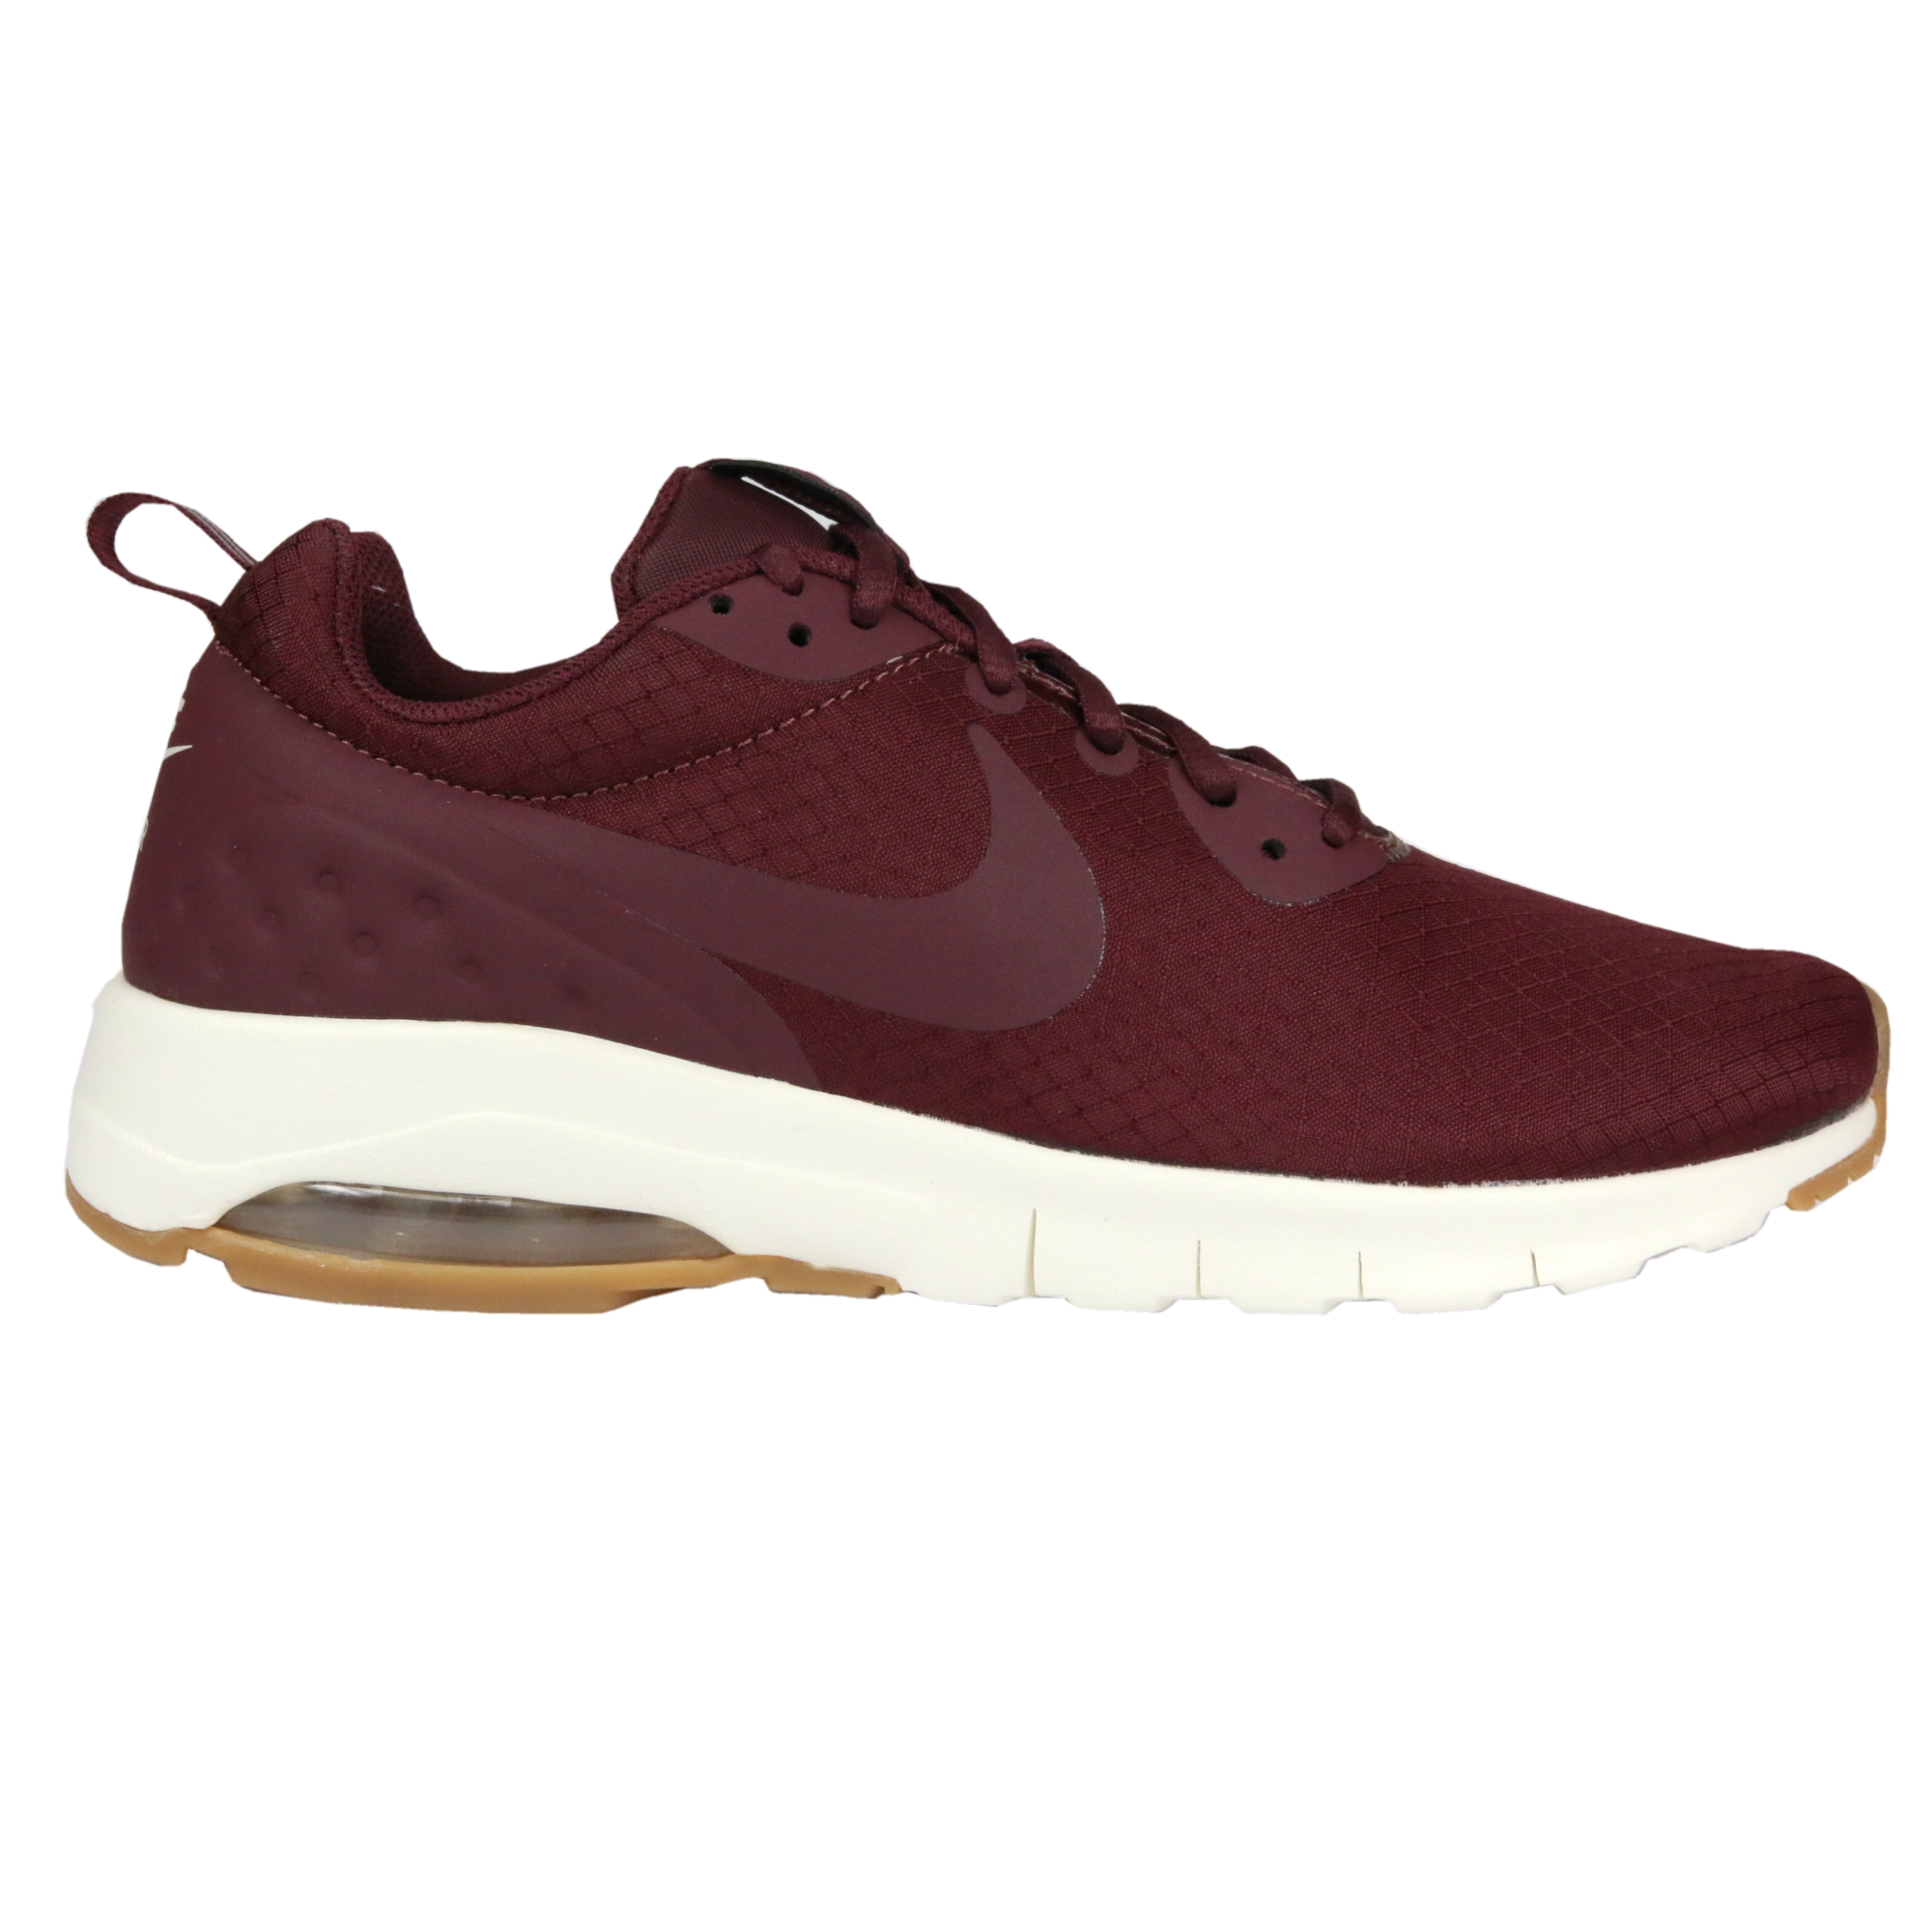 Nike Air Max Ebay aktion